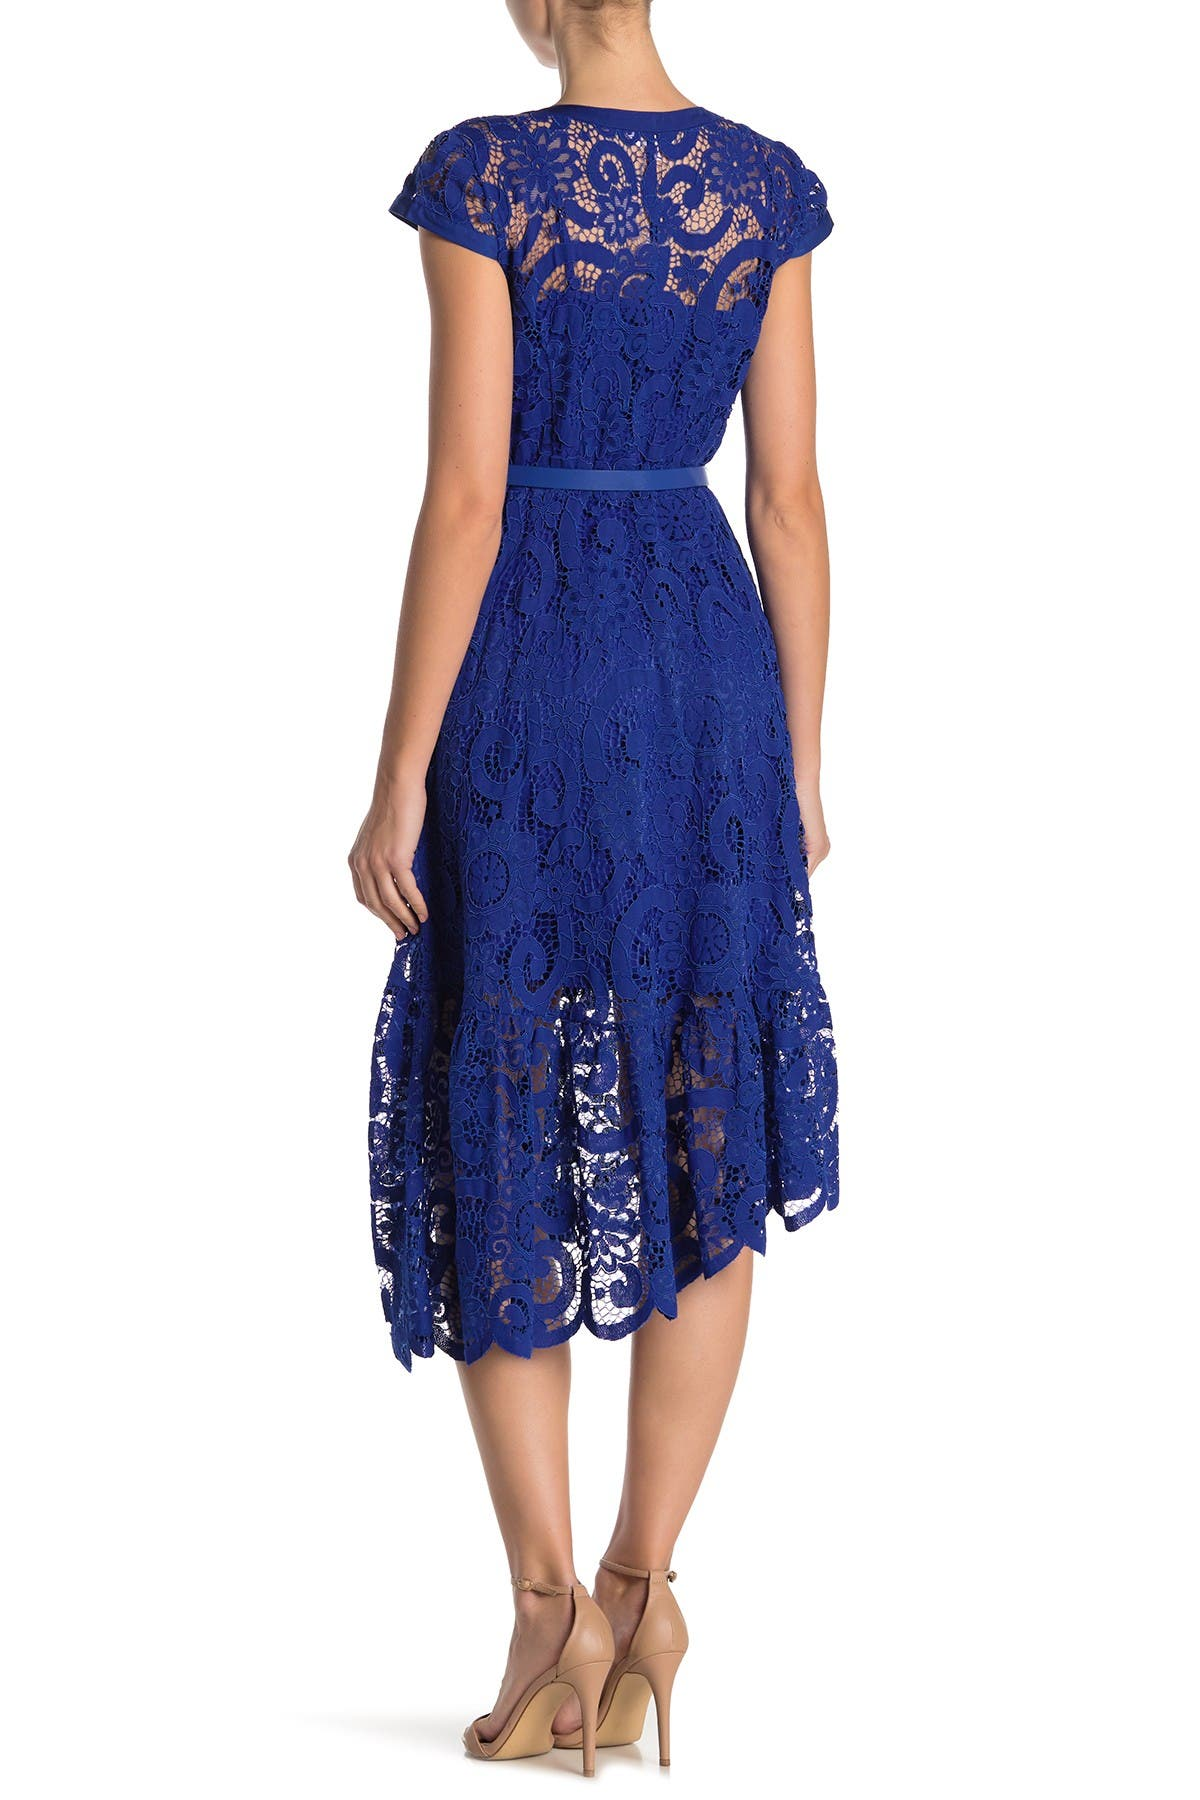 Image of NANETTE nanette lepore Cap Sleeve Lace Dress